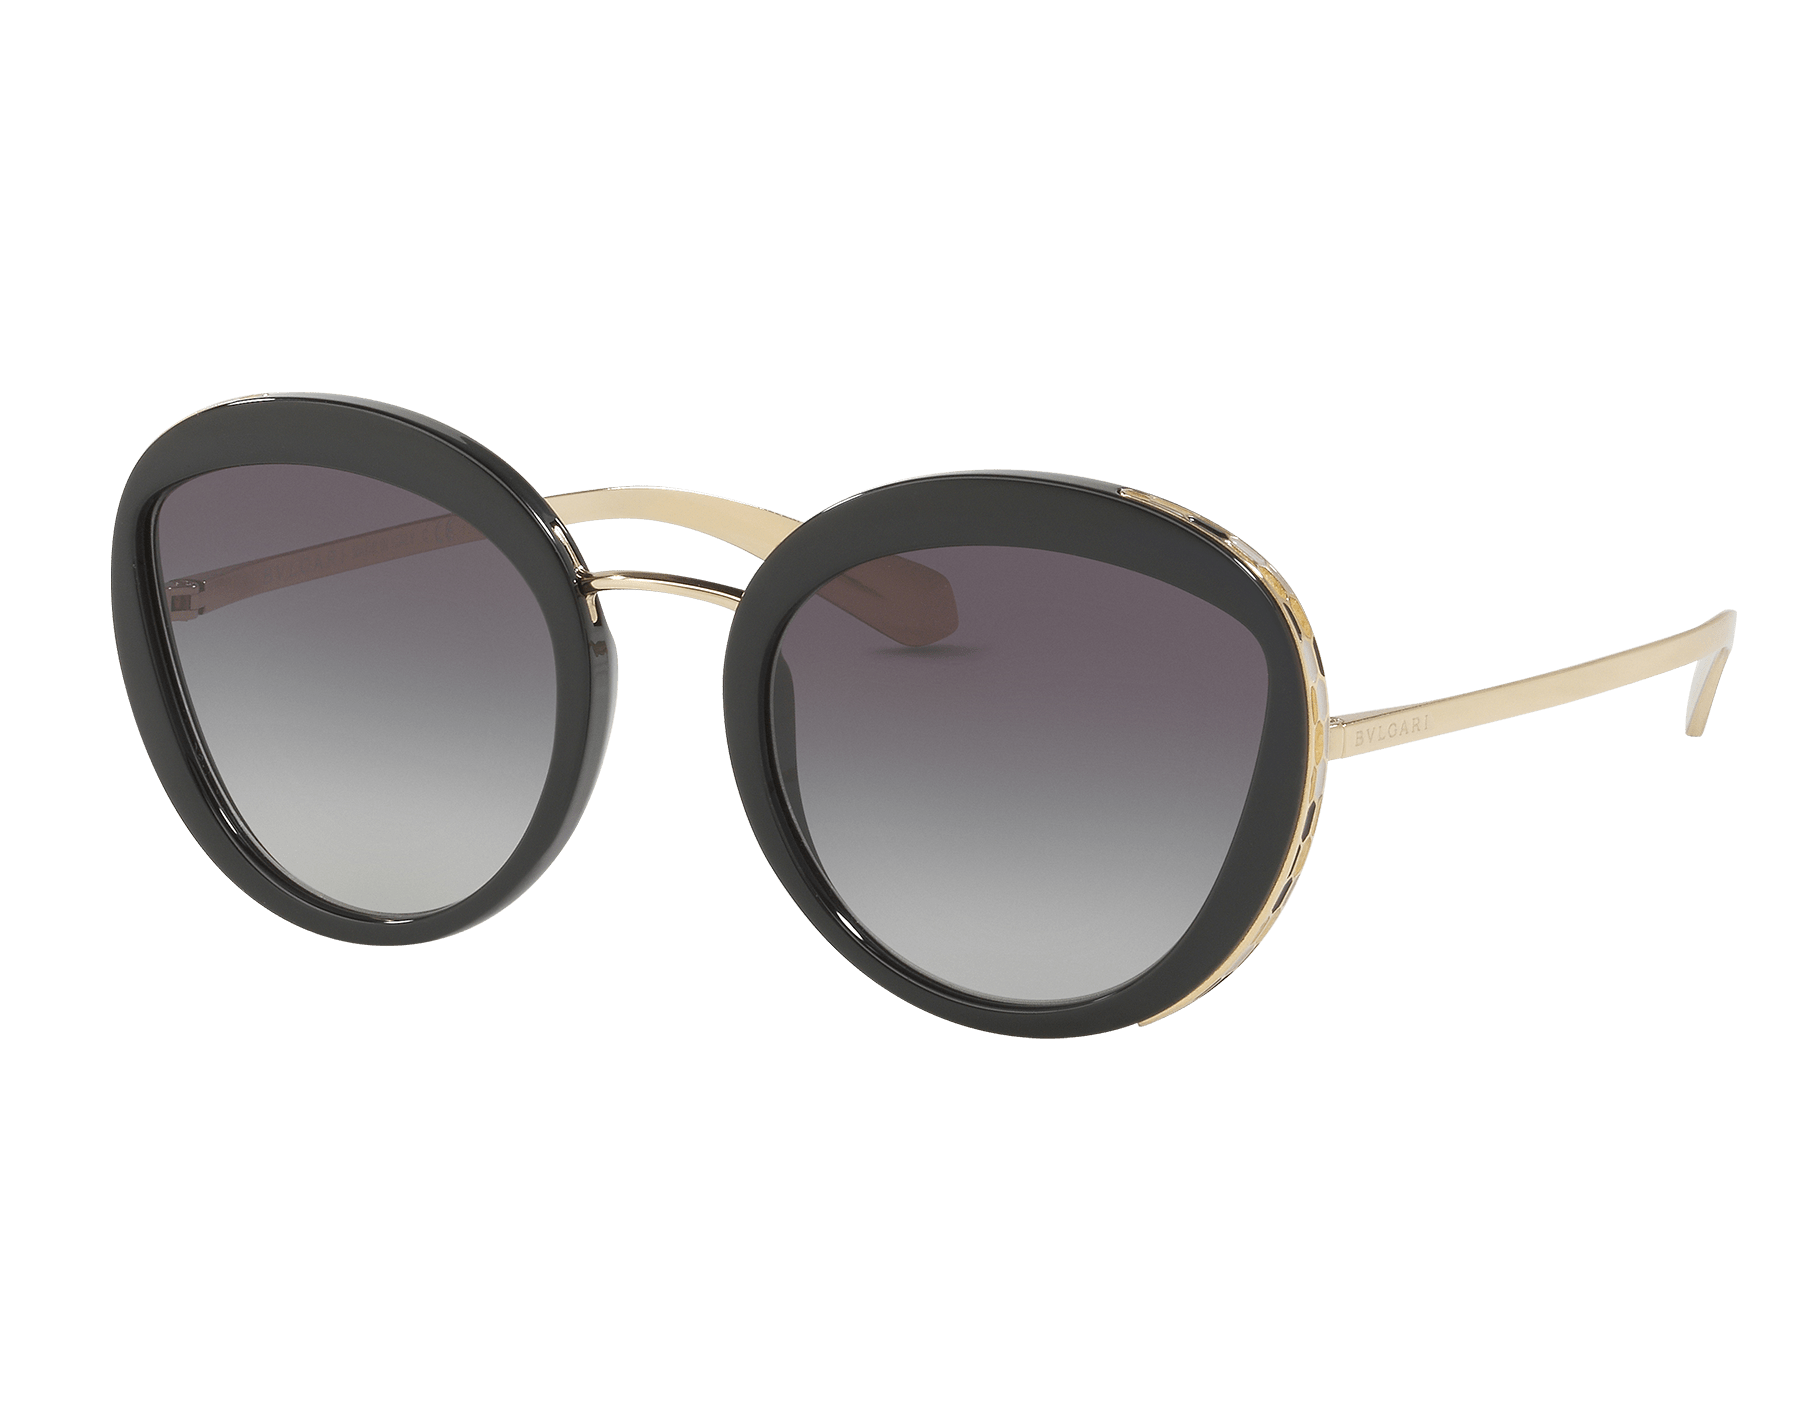 Serpenti round acetate frame Sunglasses with eye-shaped lenses. 903310 image 1